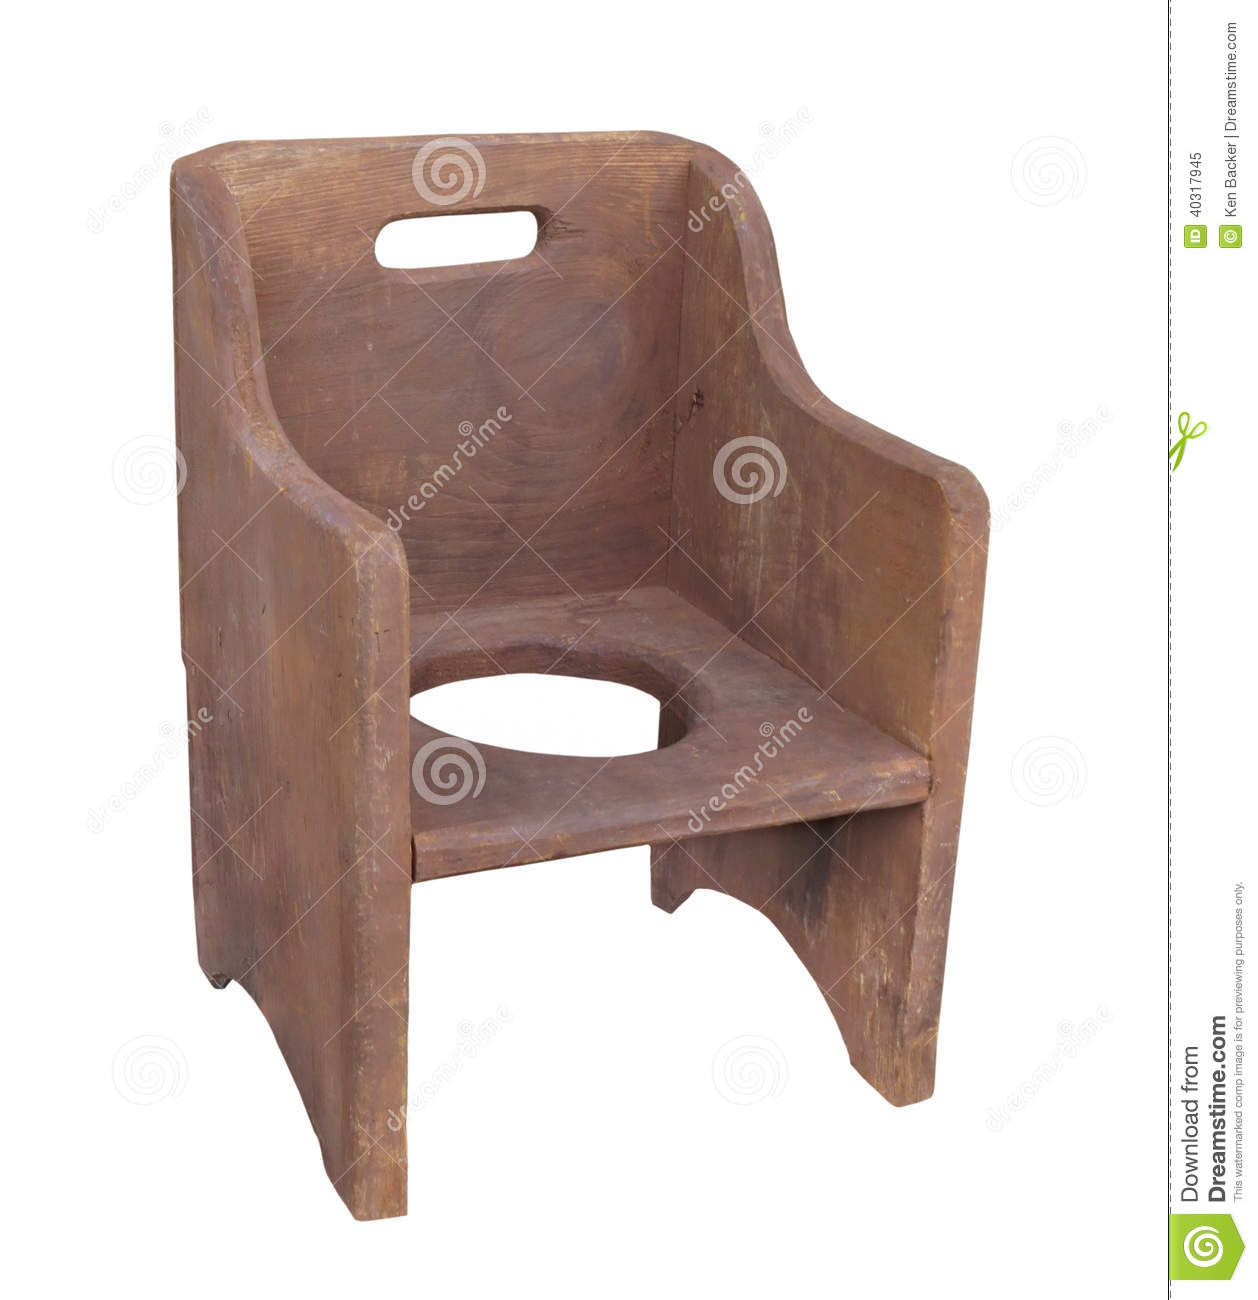 wooden potty training chair zero gravity shiatsu massage old child isolated stock photo image